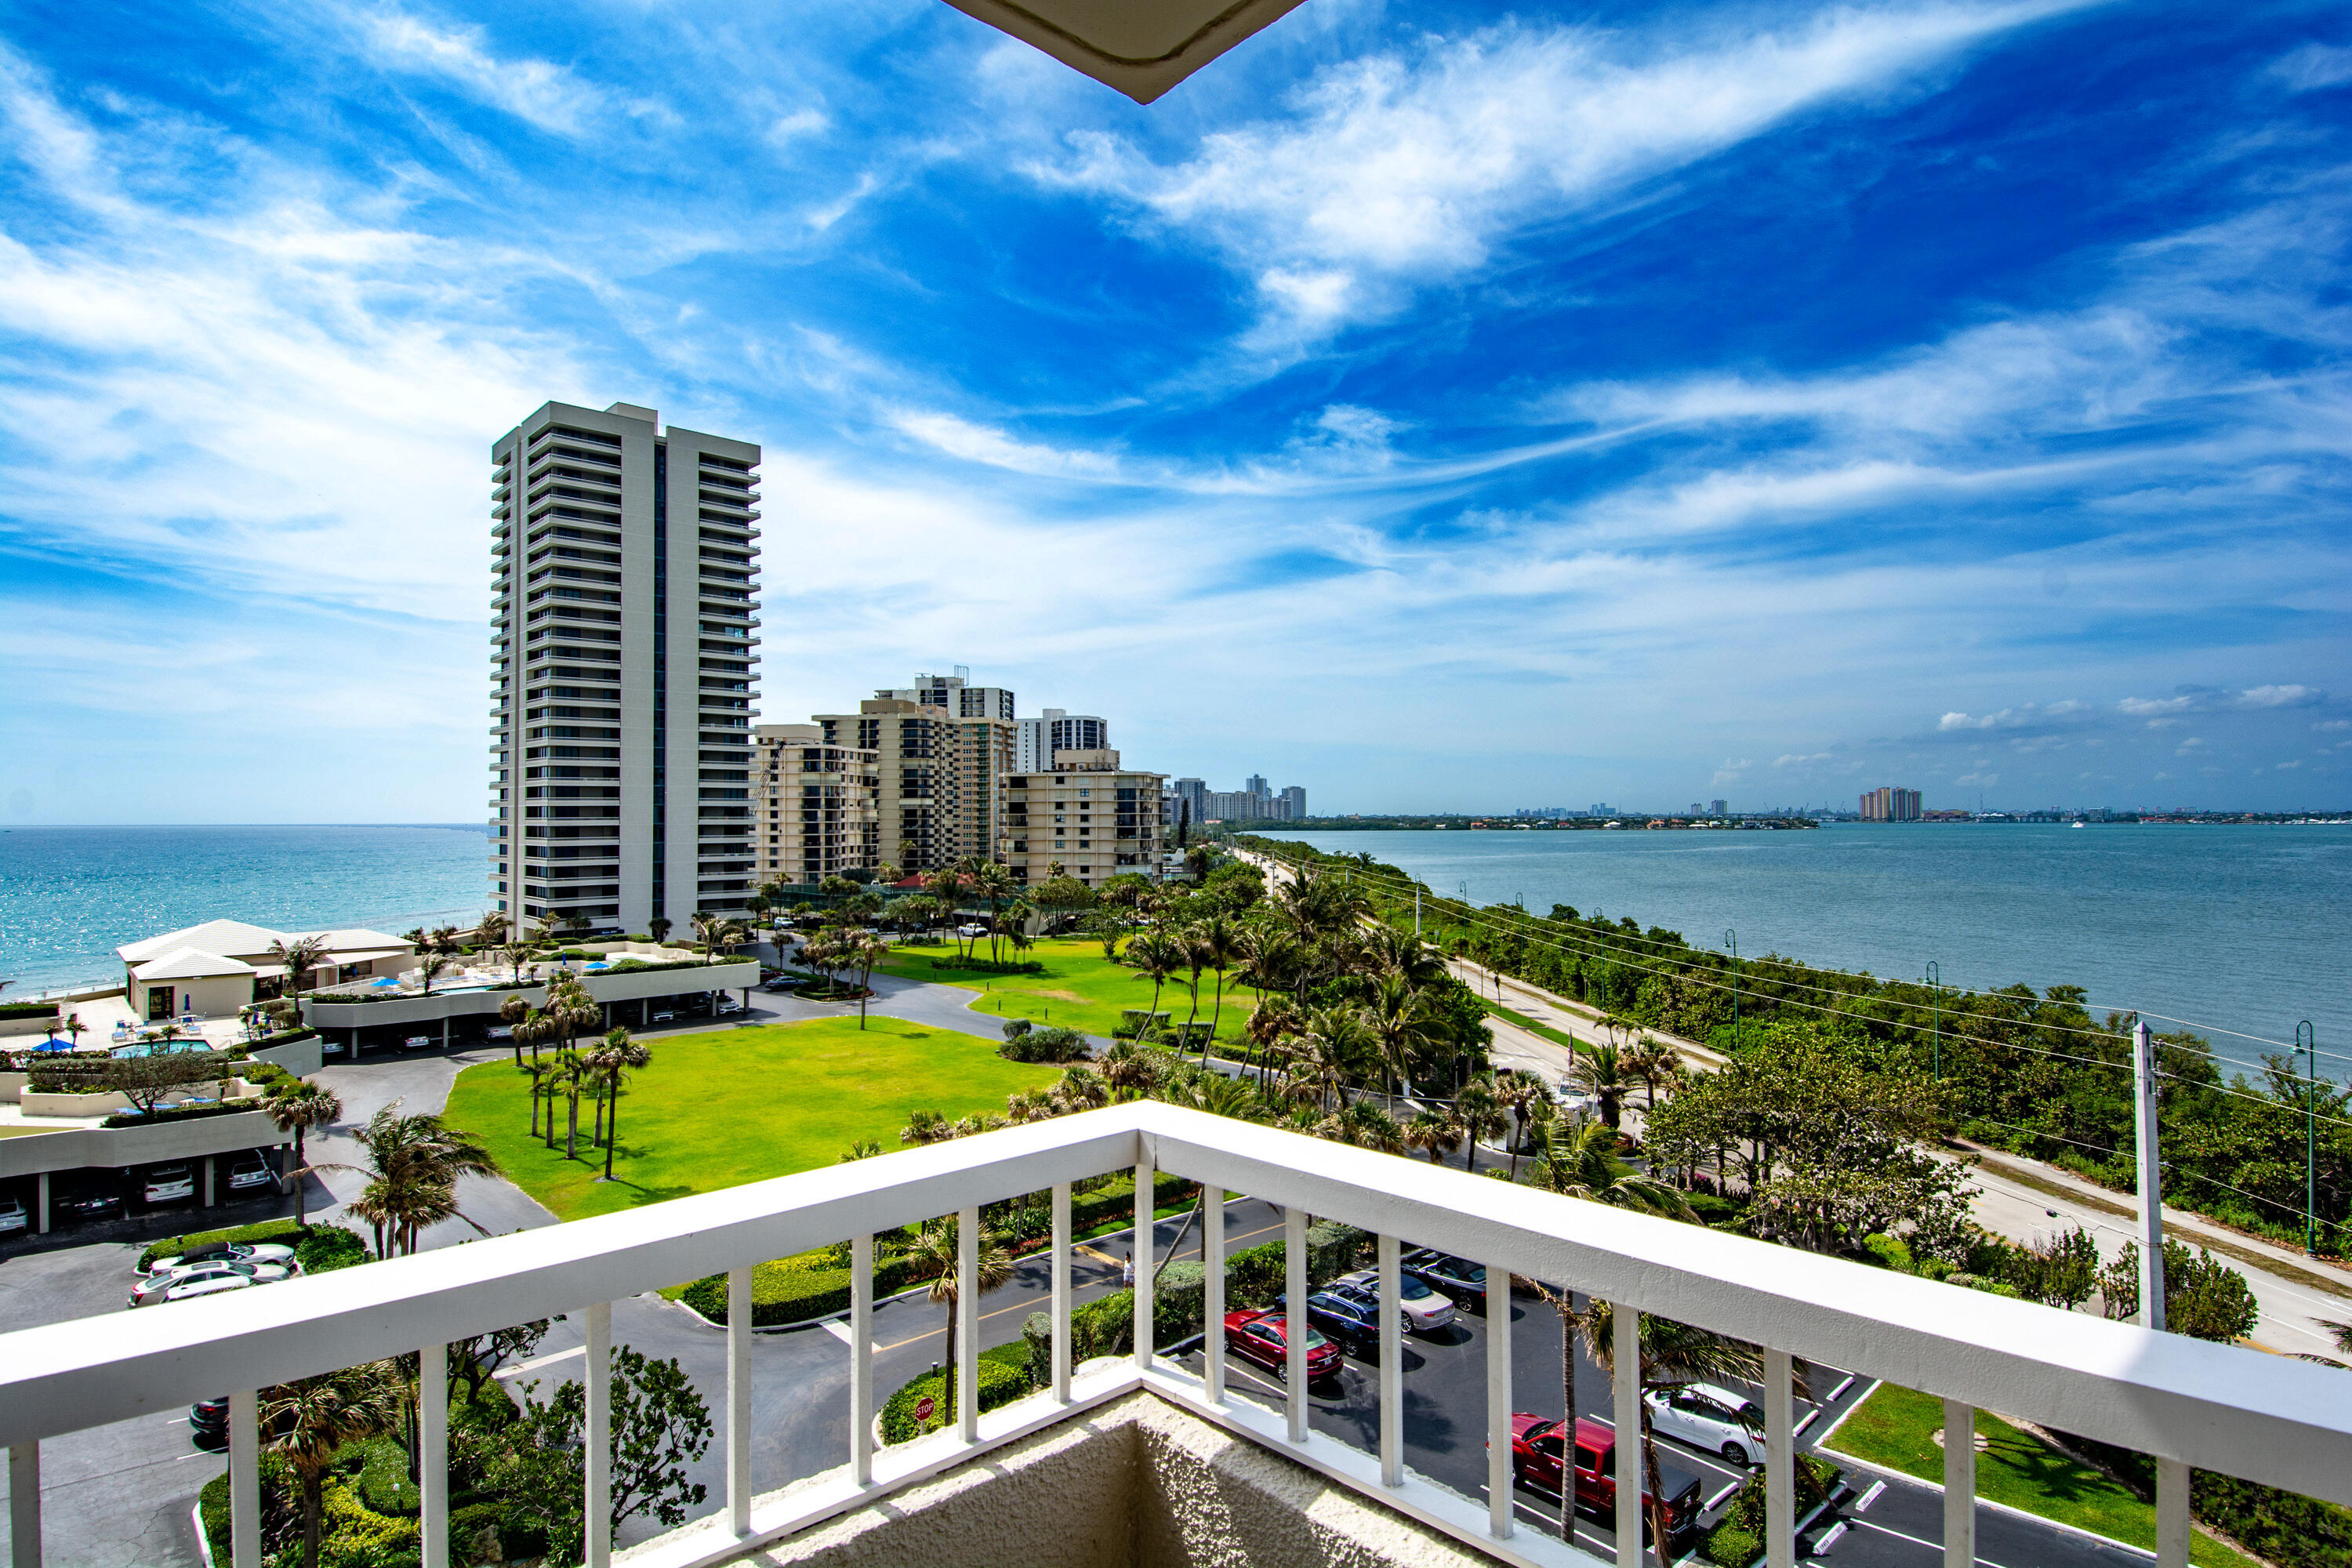 Beautiful Southeast Ocean & Intracoastal views in this bright updated & open condoUpdates include lovely large neutral  tile flooring open kitchen with  bar height counter & upgraded cabinetry perfect place to sit enjoy the stunning view The condo has new impact glass windows & sliding doors. It is being offered furnished with a few exclusions & with covered parking space #85 This building is pet friendly for 1 dog under 10lbs & has a gym on the 1st level The location is prime on the north side of Singer Island directly next to the MacArthur Beach State Park with 438 acres of natural Florida Beach and nature preserve The building amenities include private seawall protected beach frontage, 2 heated pools, 4 tennis courts and recreation deck with an owners lounge featuring an ocean view